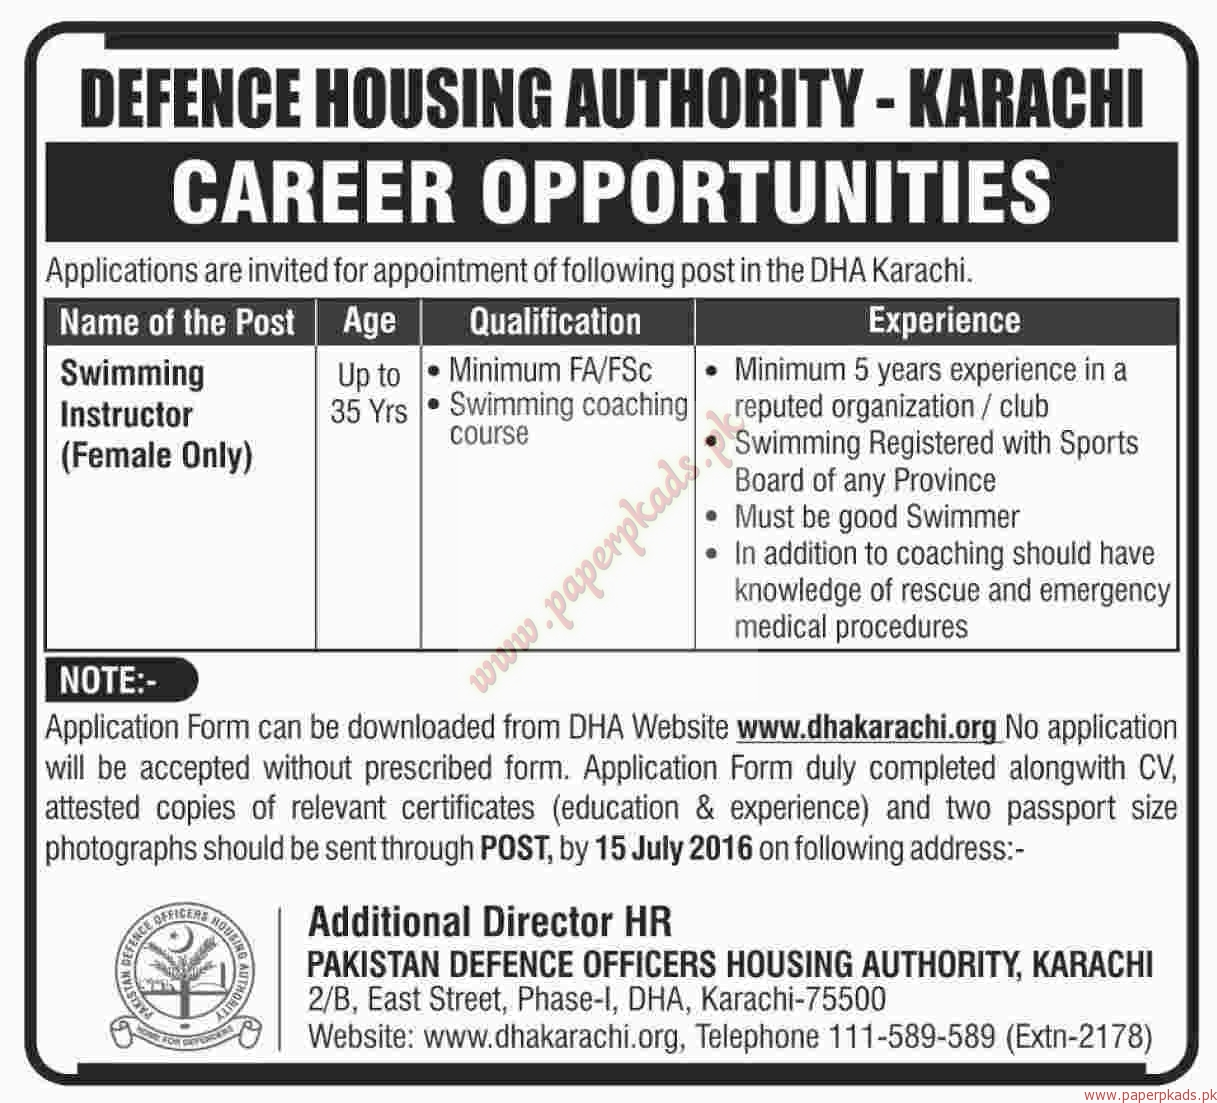 defence housing authority karachi jobs 2 dawn jobs ads 03 defence housing authority karachi jobs 2 dawn jobs ads 03 2016